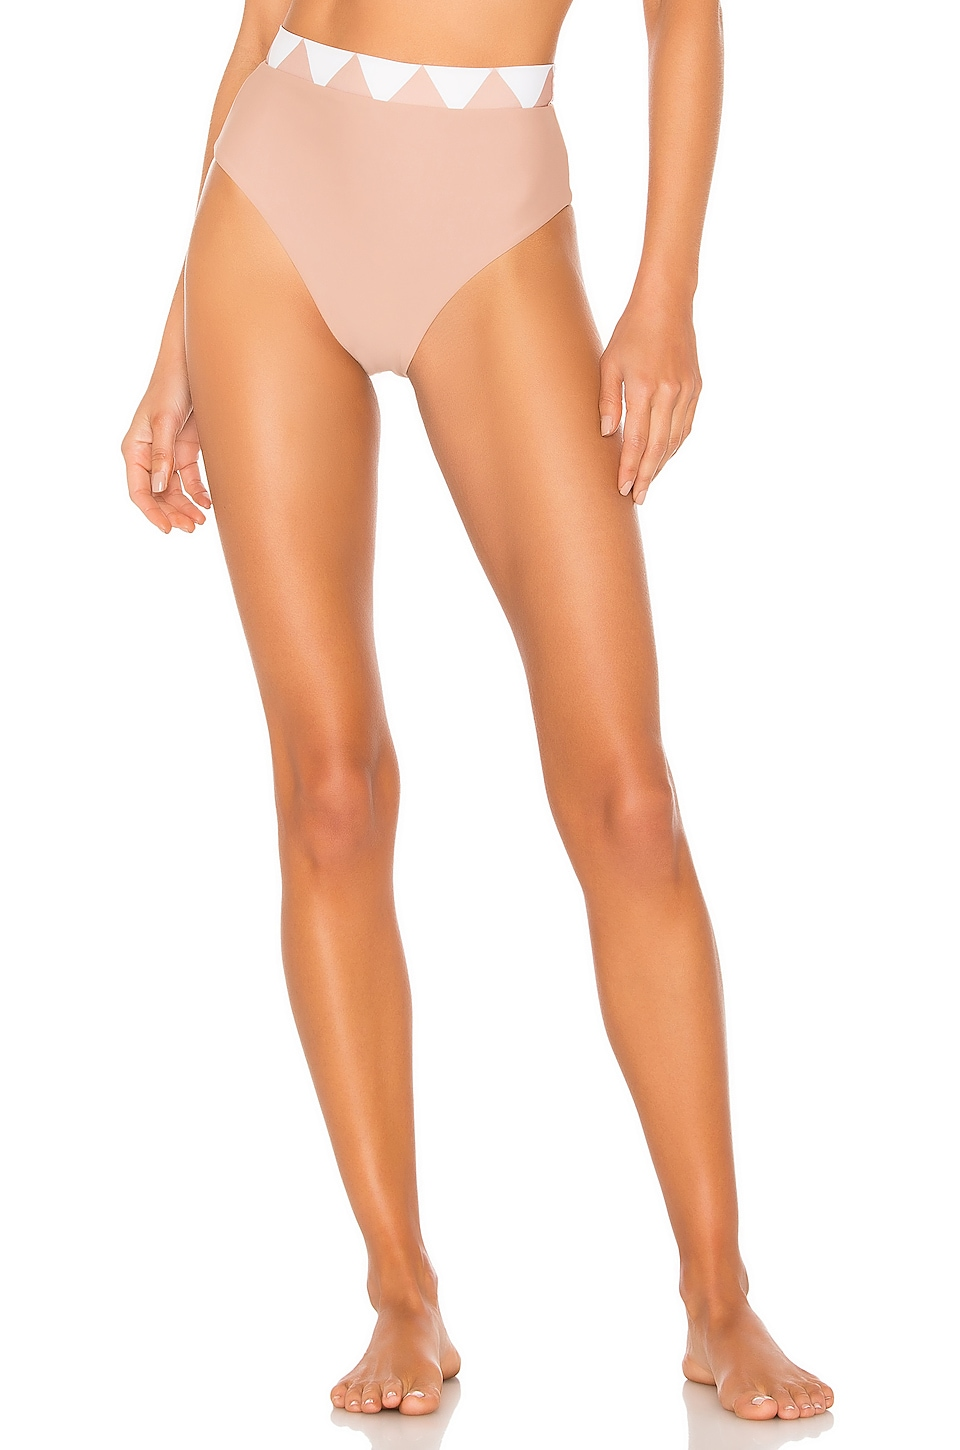 House of Harlow 1960 x REVOLVE Veda High Waist Bottom in Nude & White